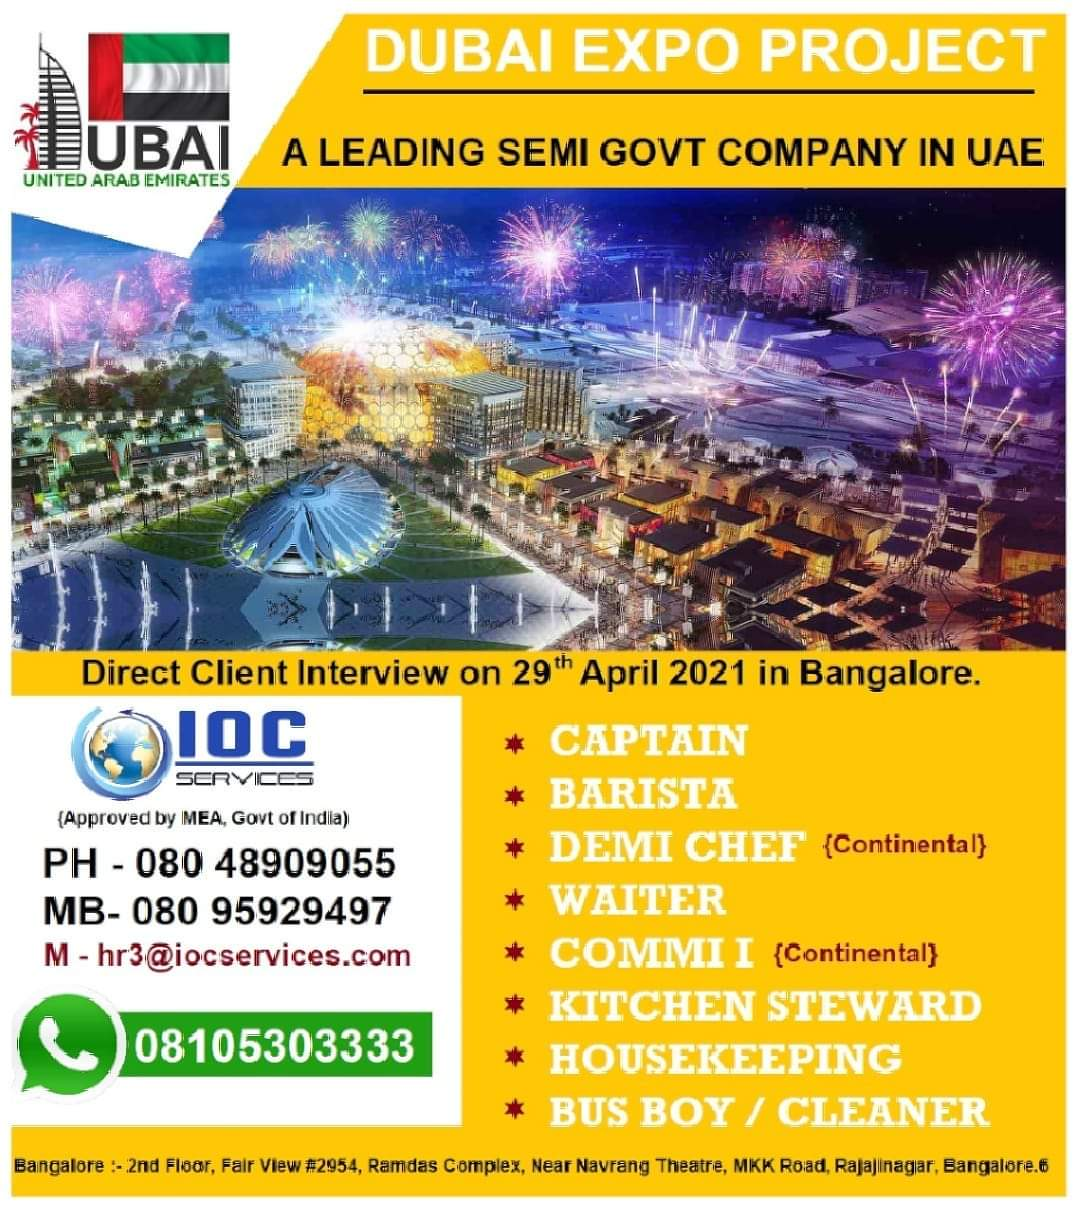 REQUIREMENT FOR DUBAI EXPO PROJECT